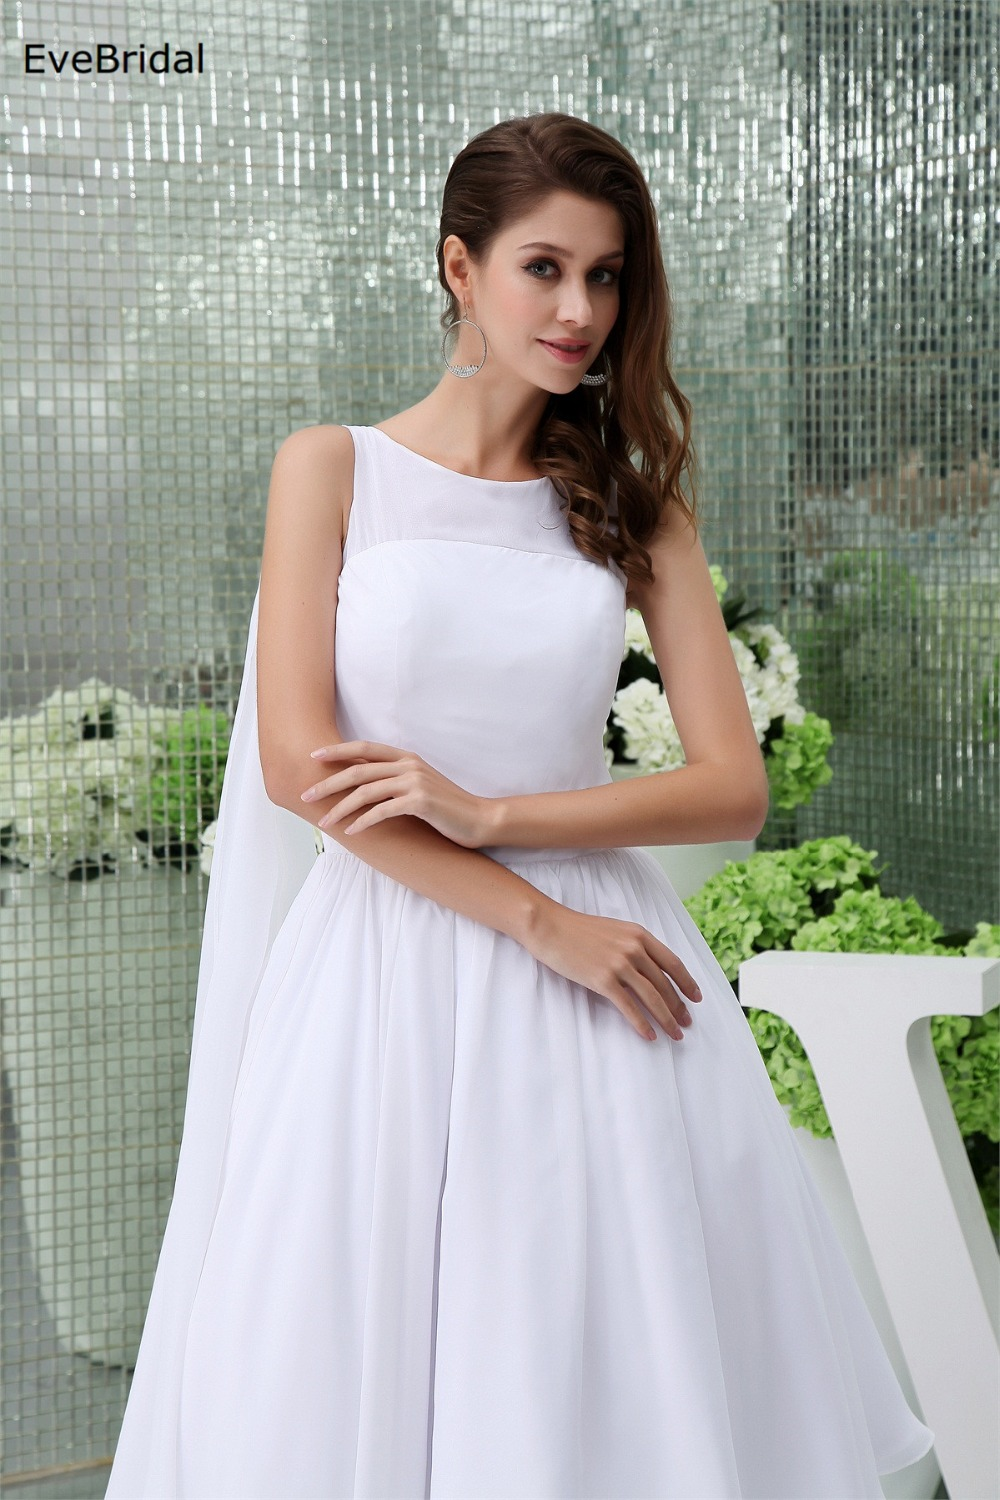 Chiffon a line high neck sleeveless tea length bridesmaid dresses chiffon a line high neck sleeveless tea length bridesmaid dresses wedding party dresses robe de soiree in underwear from mother kids on aliexpress ombrellifo Image collections